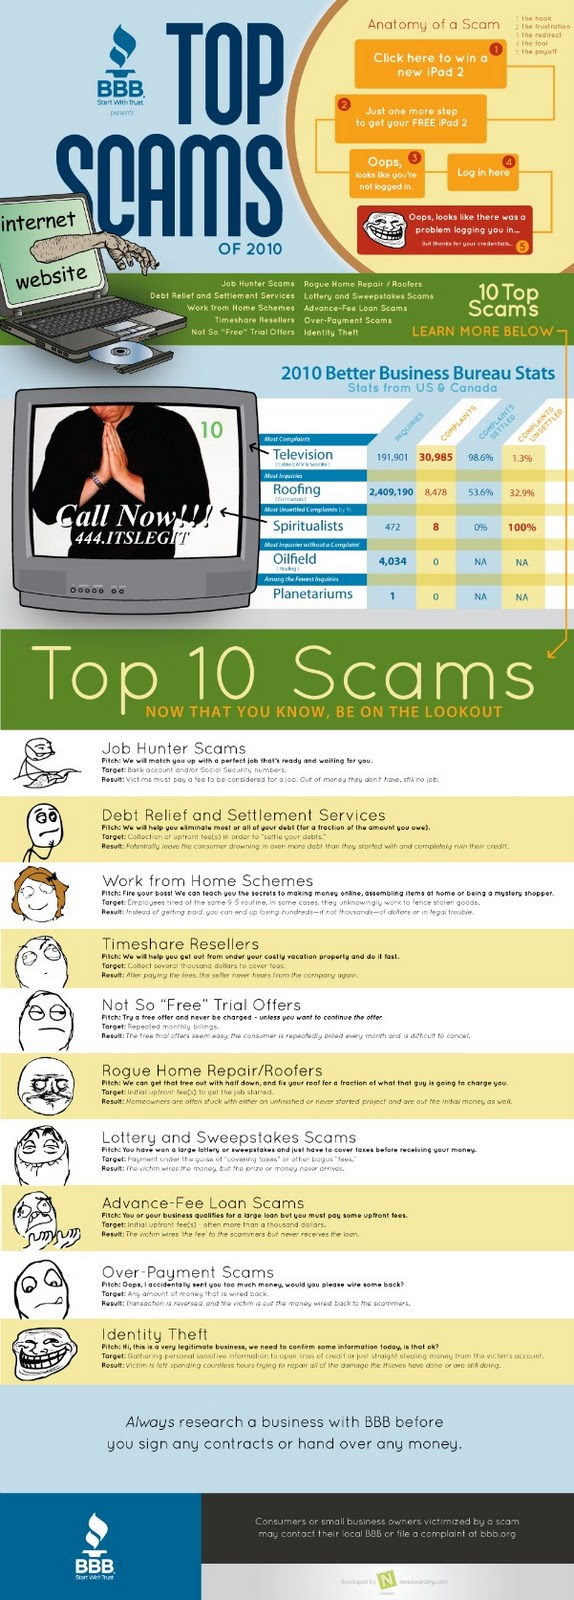 Top 10 online scams from the BBB